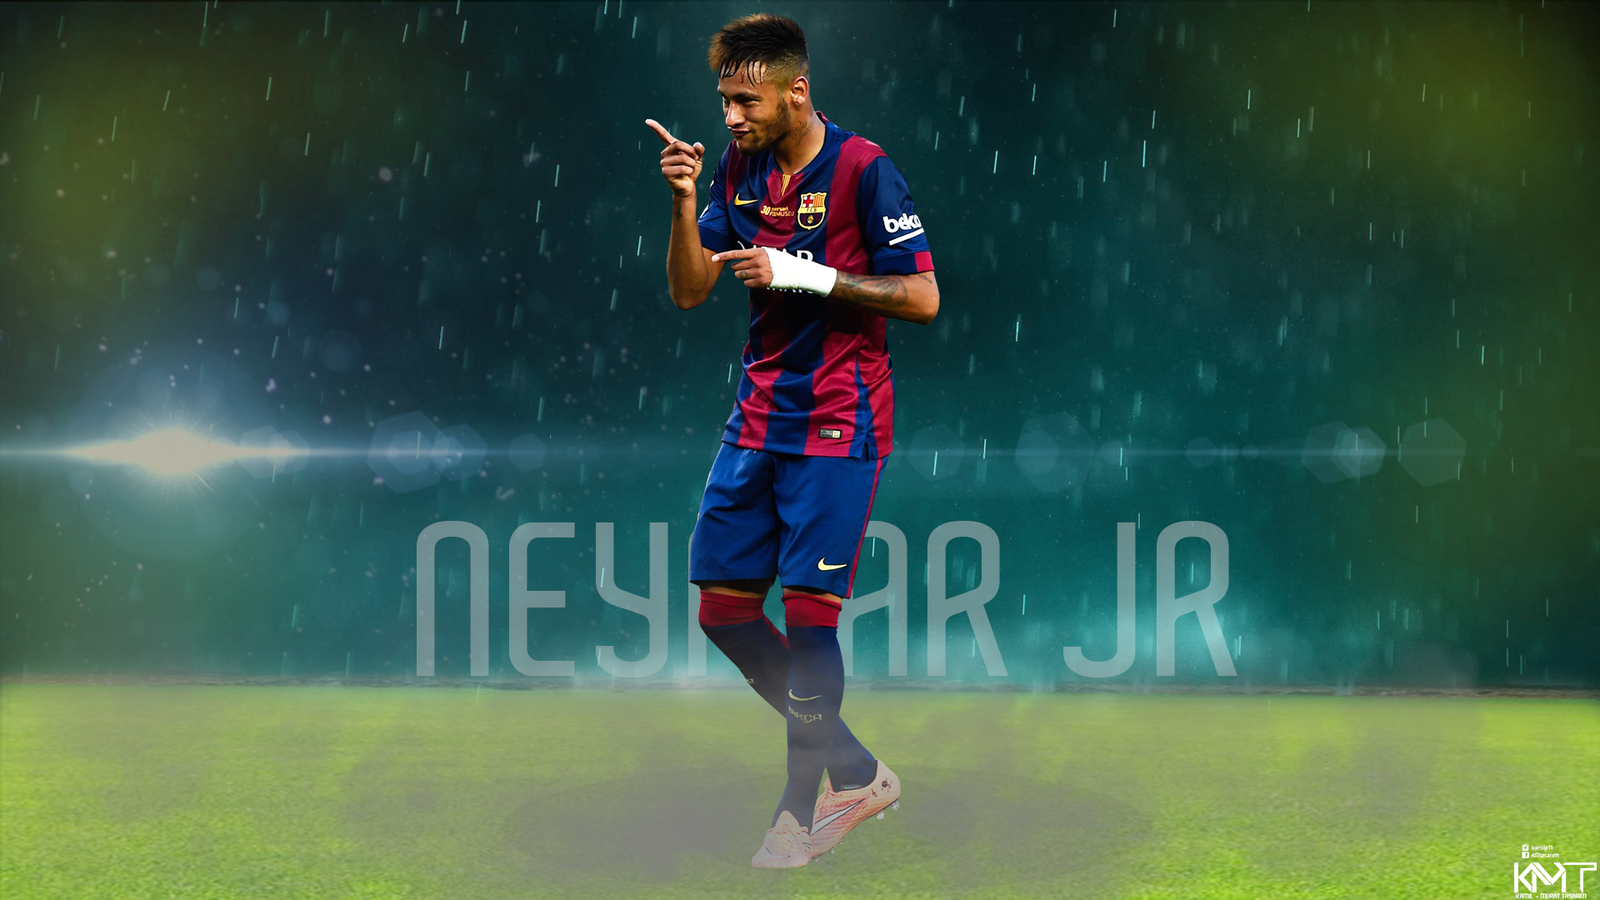 Hd wallpaper neymar - Neymar 2016 Wallpaper Hd Hd Wallpapers Backgrounds Of Your Choice